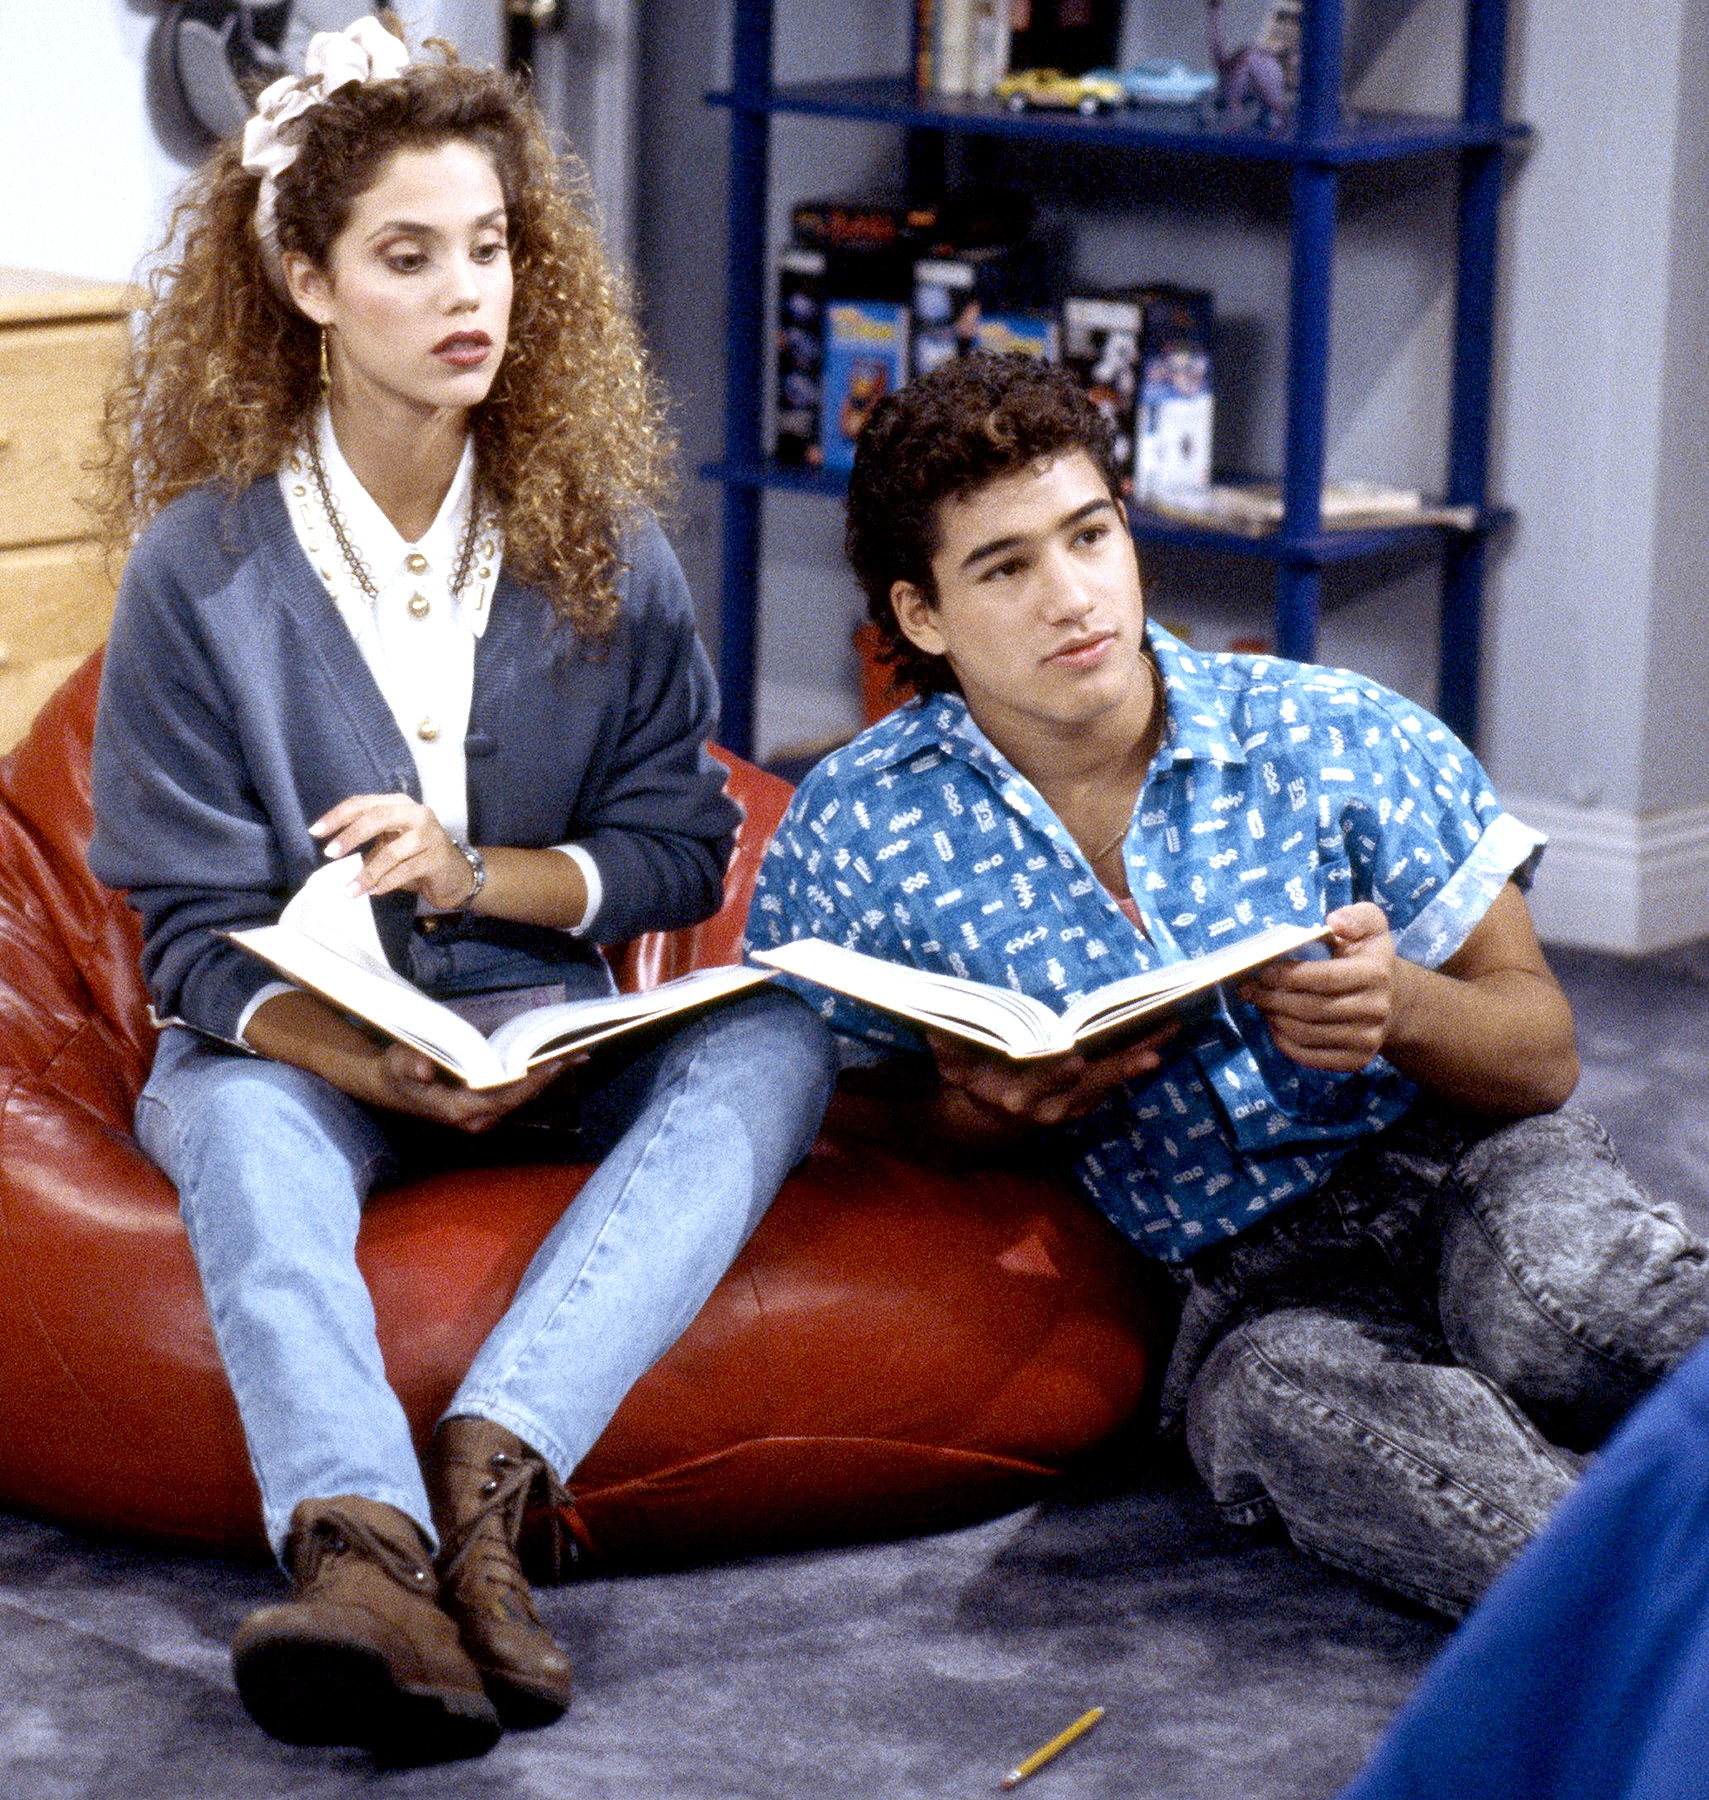 Elizabeth Berkley as Jessie Spano and Mario Lopez as A.C. Slater on Saved by the Bell.